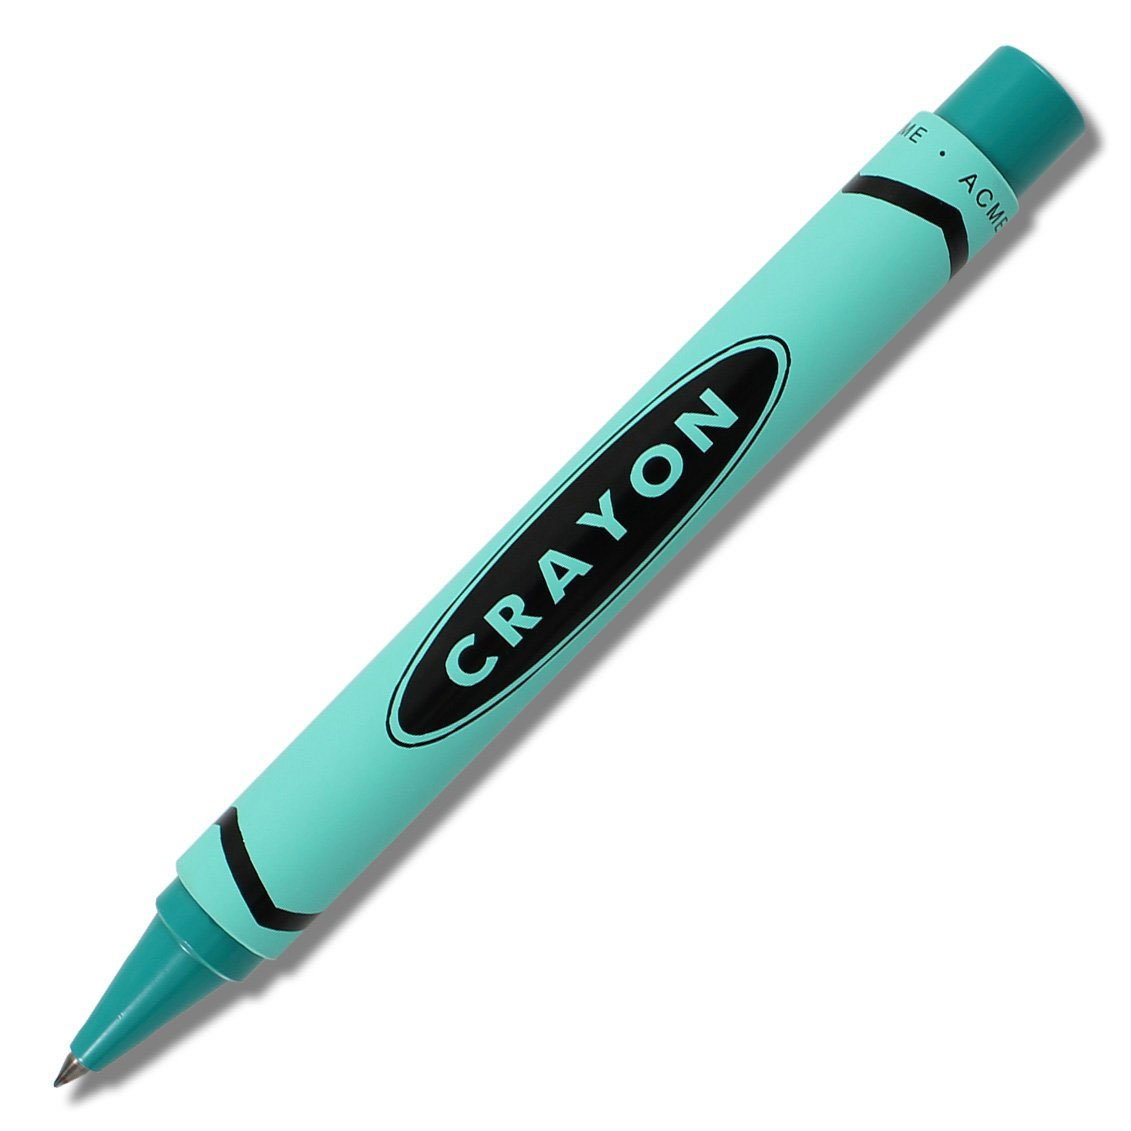 Acme Studio Quot Crayon Quot Retractable Roller Ball Teal